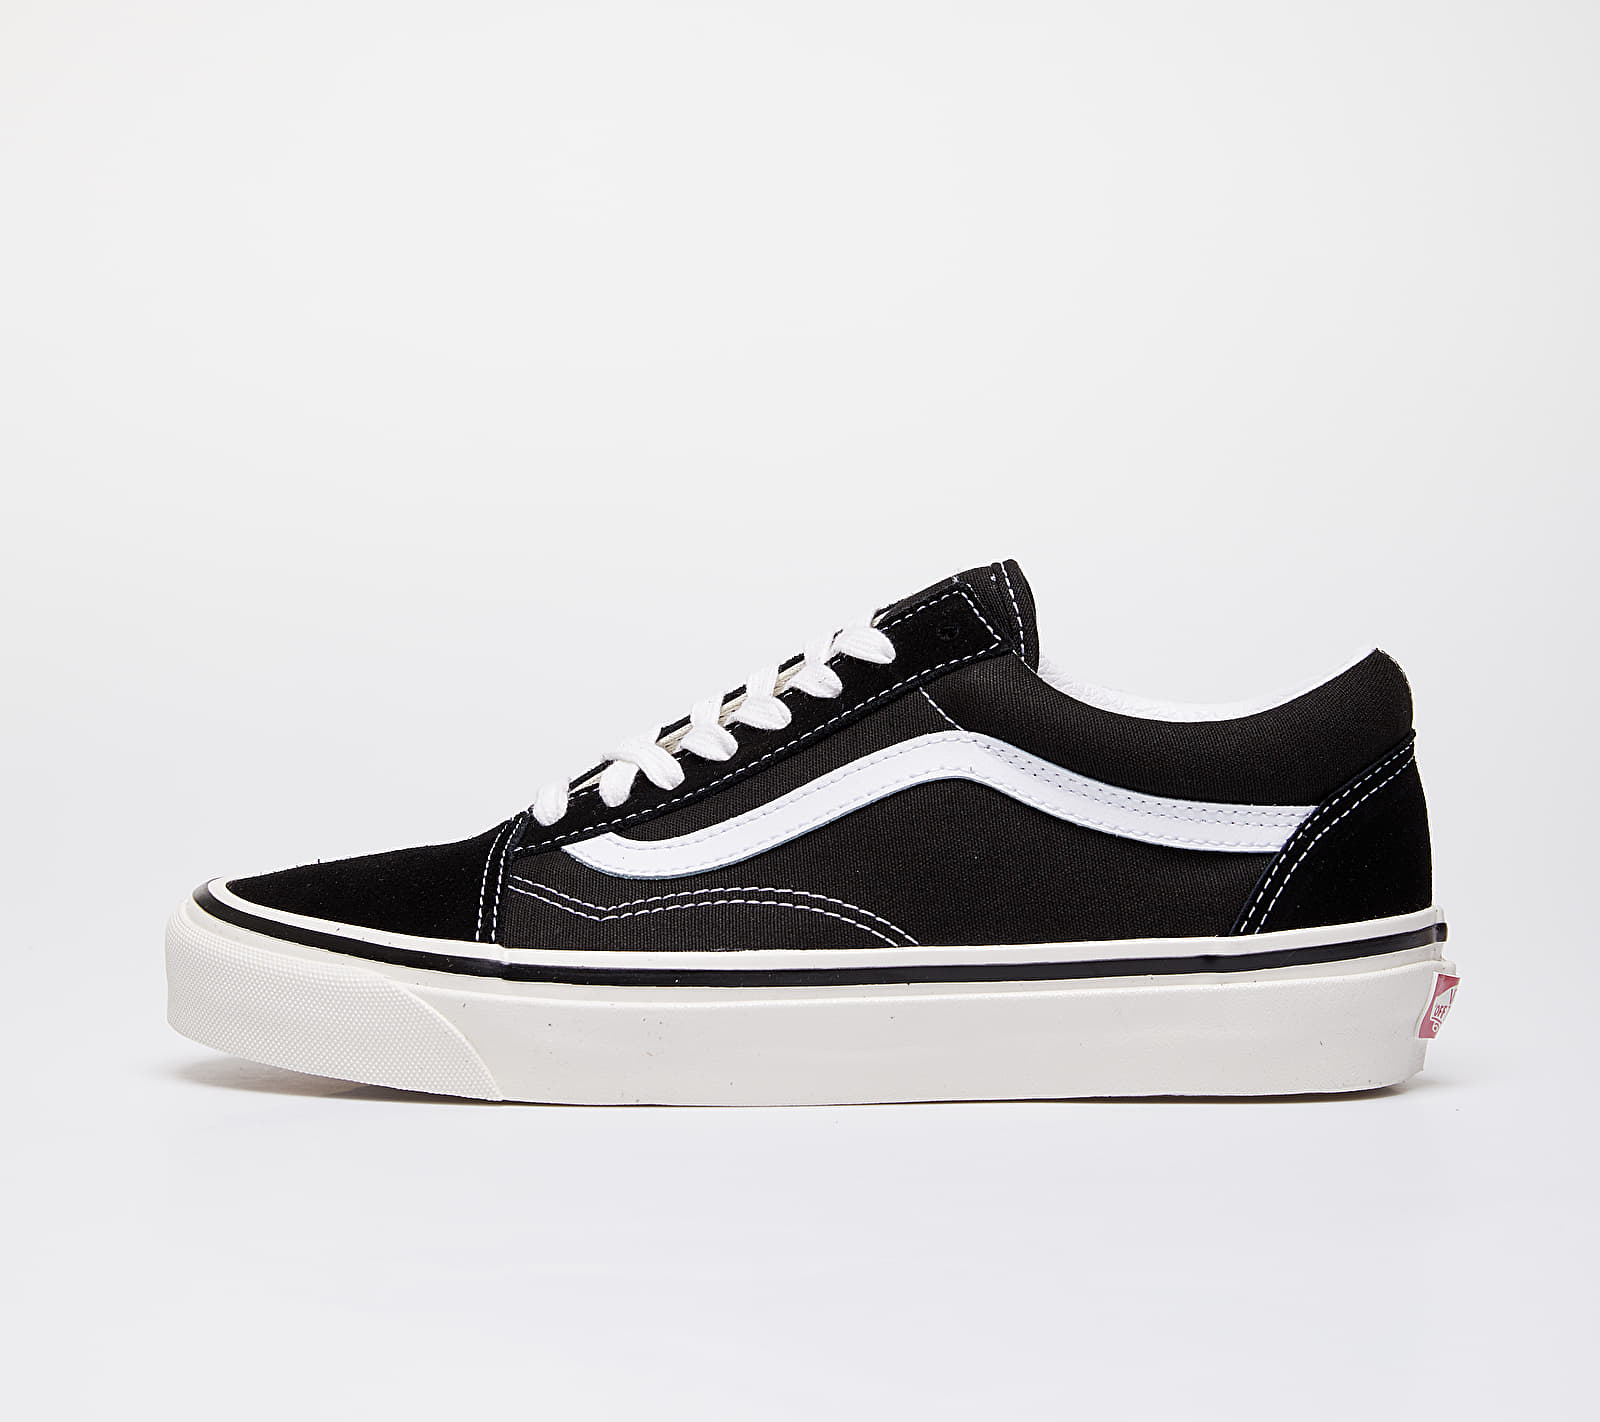 Vans Old Skool 36 DX Black/ True White EUR 34.5